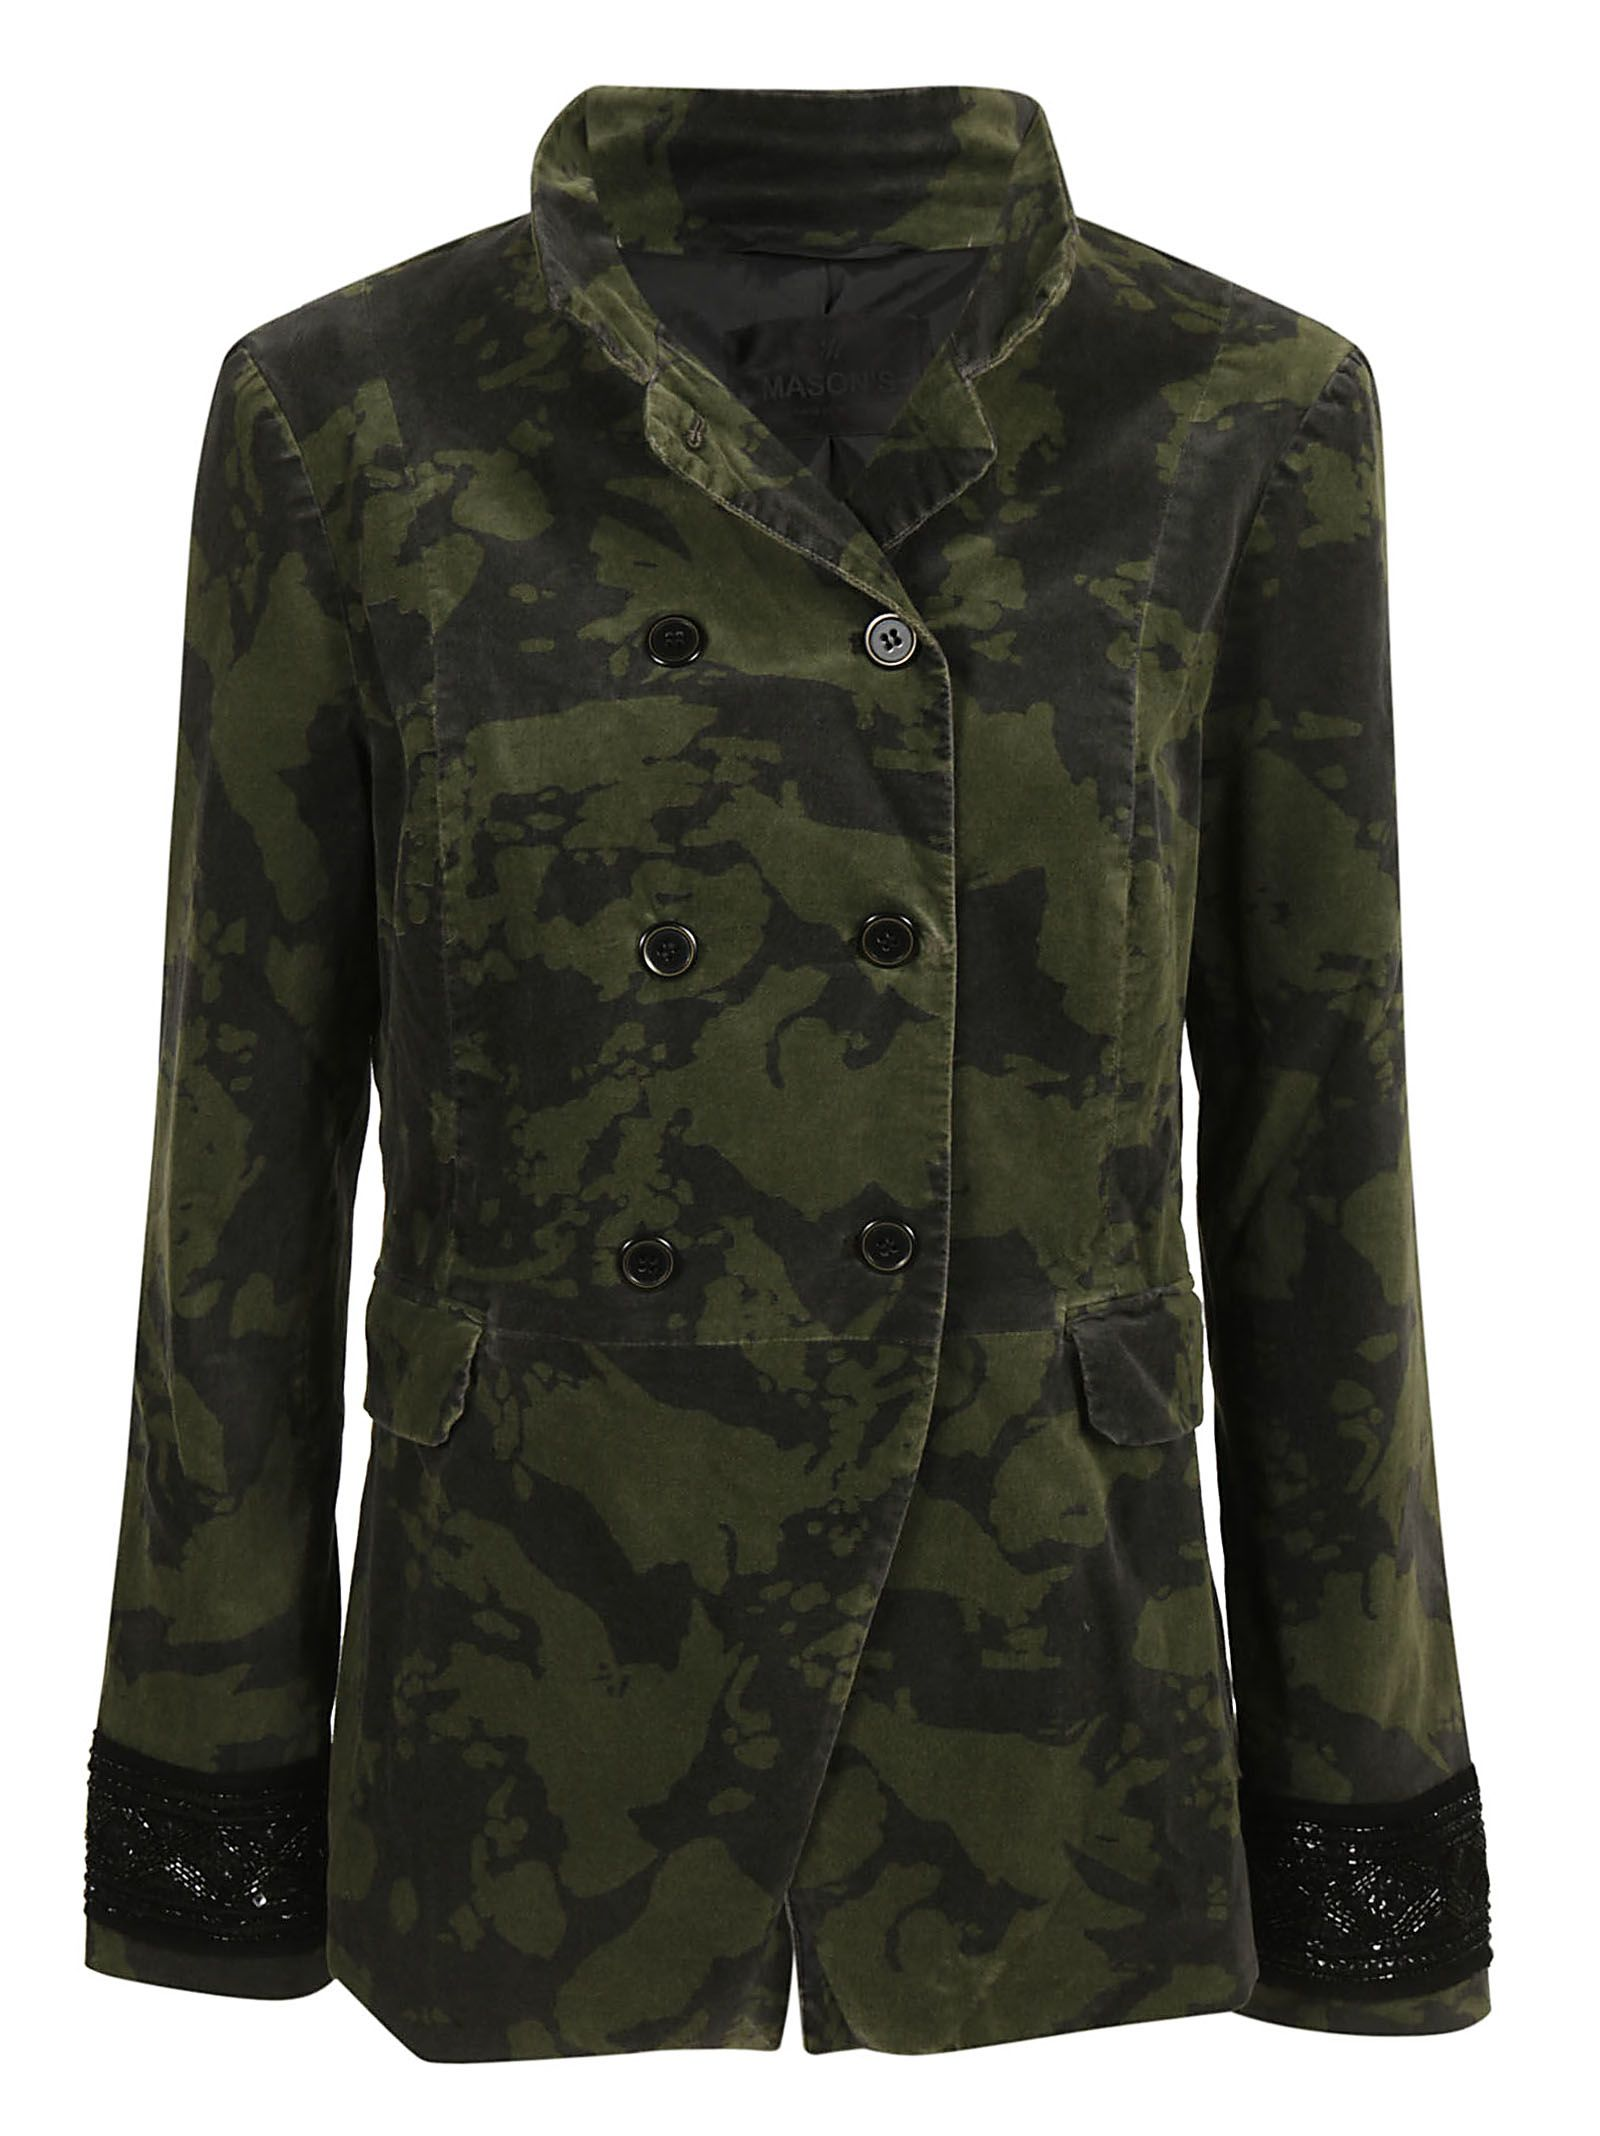 MASON'S Double Breasted Jacket in Verde